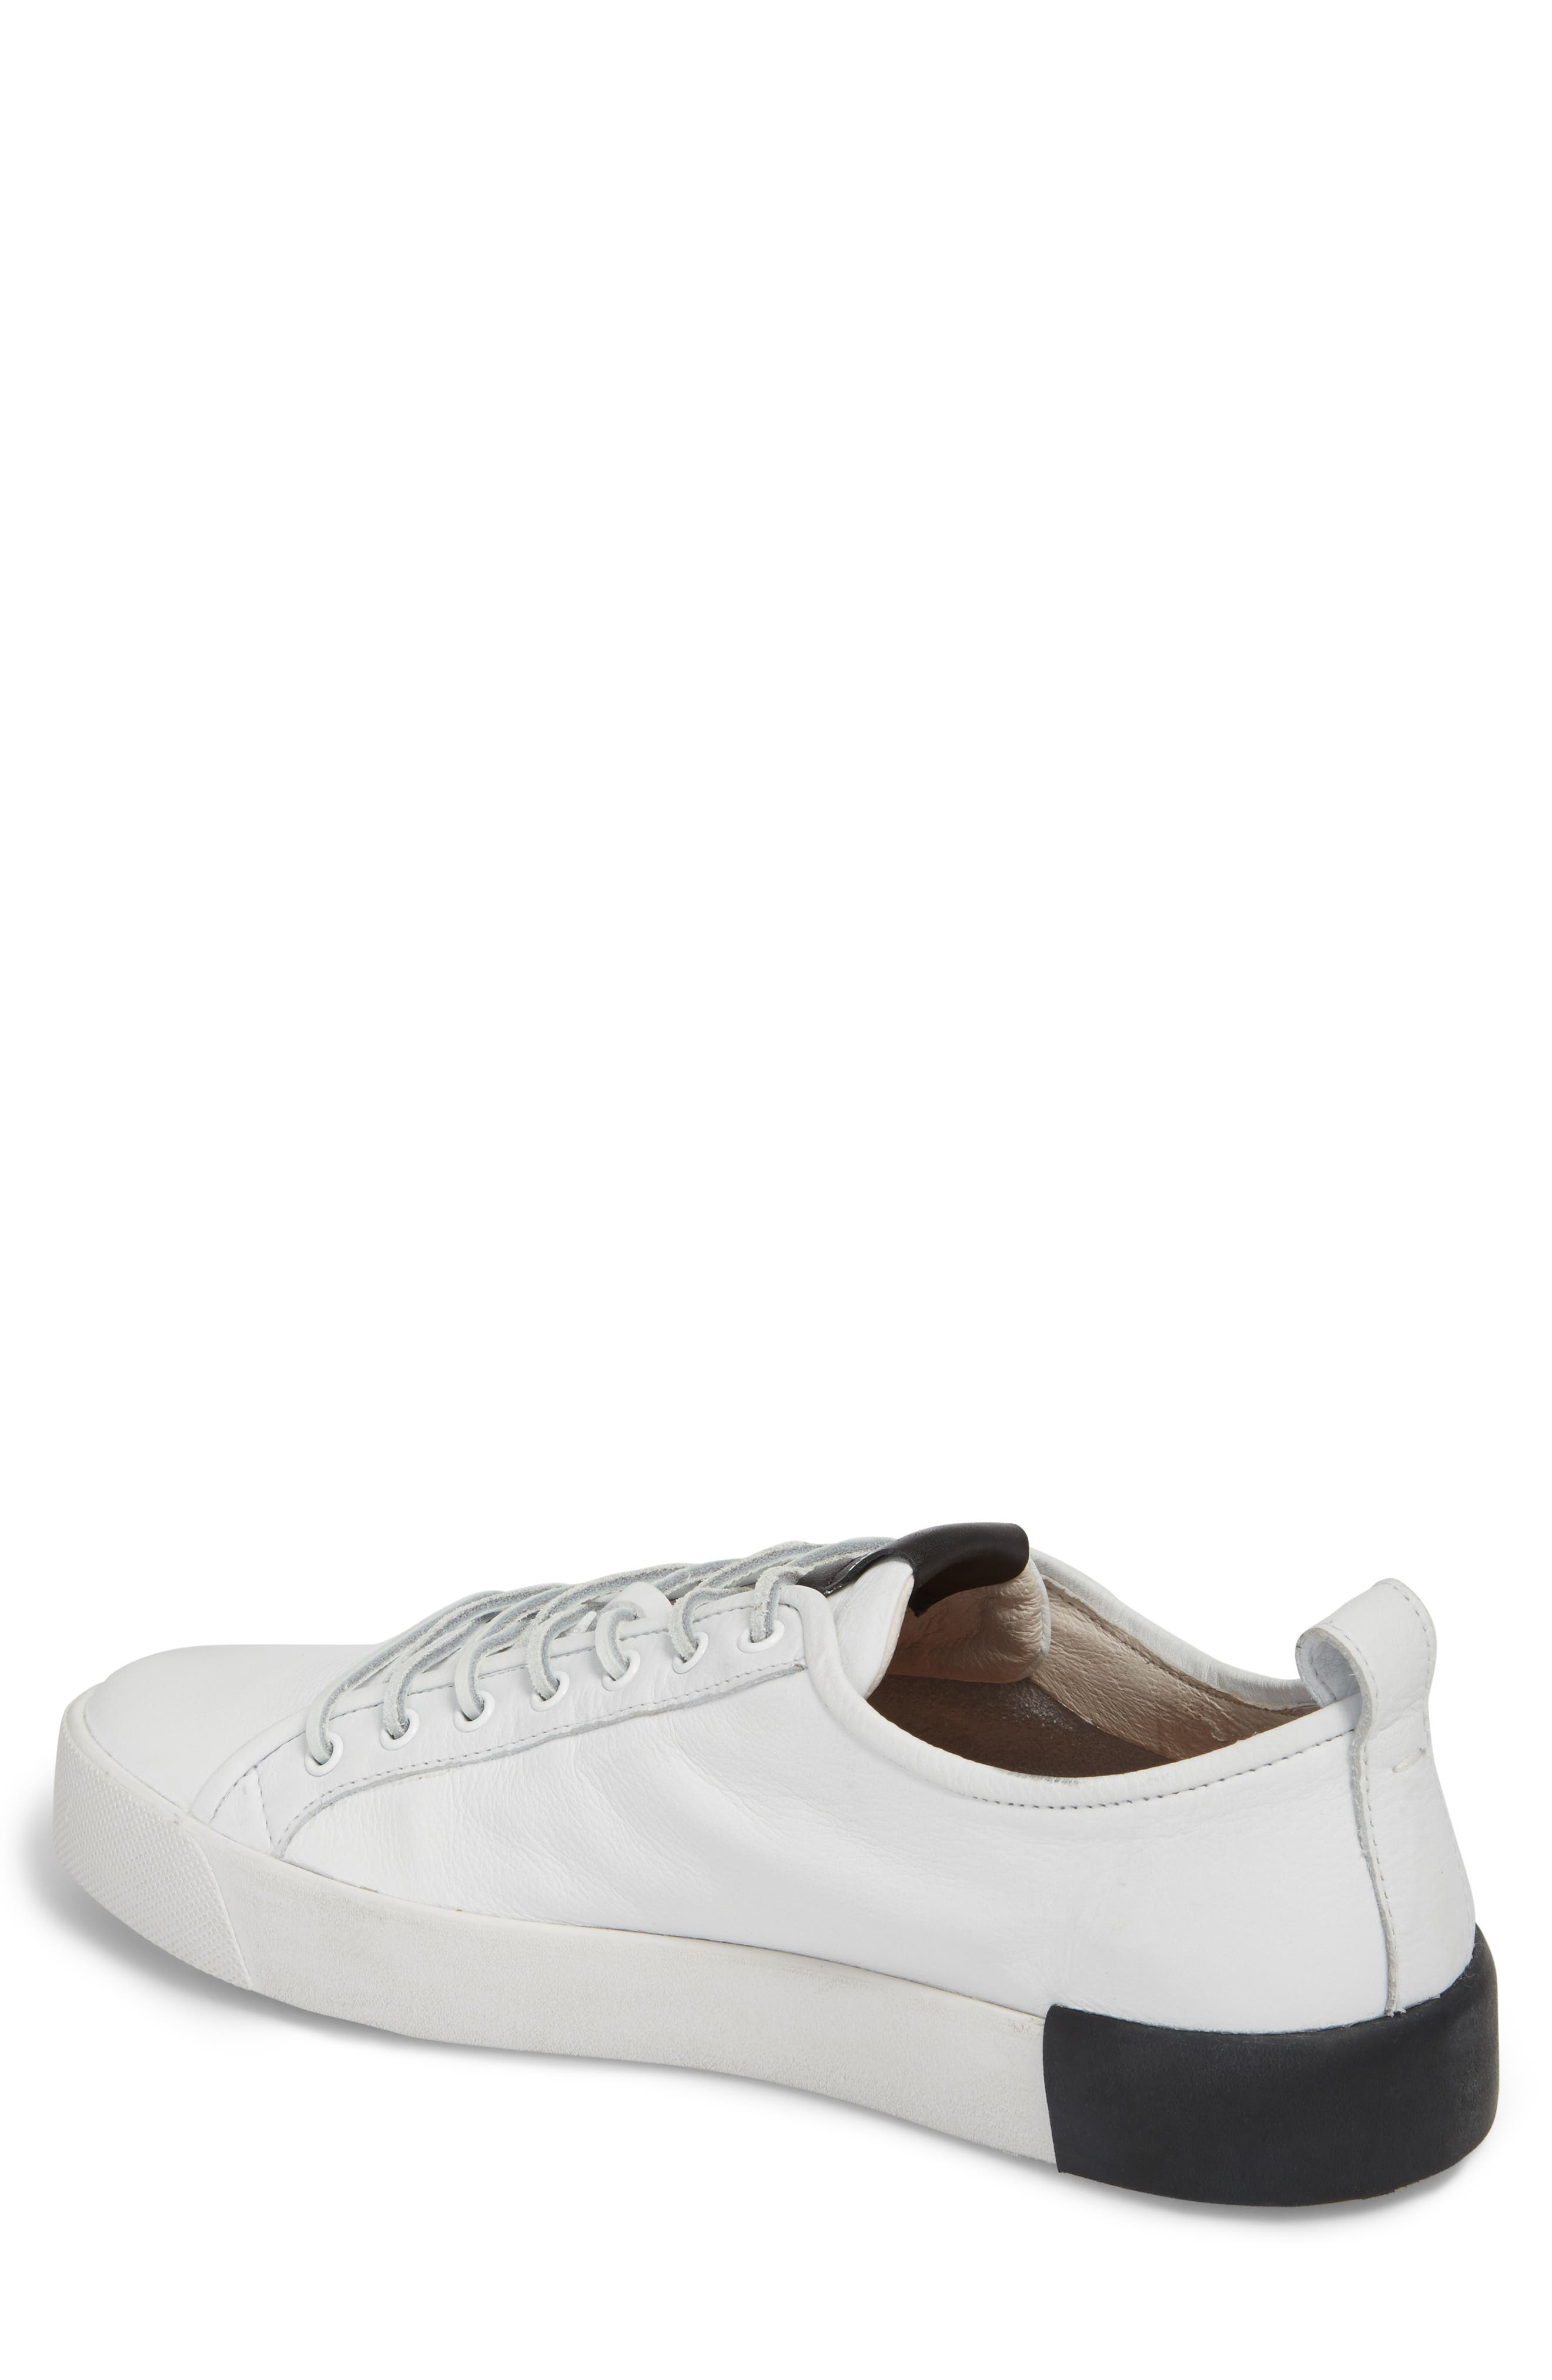 PM66 Low Top Sneaker,                             Alternate thumbnail 2, color,                             White Leather